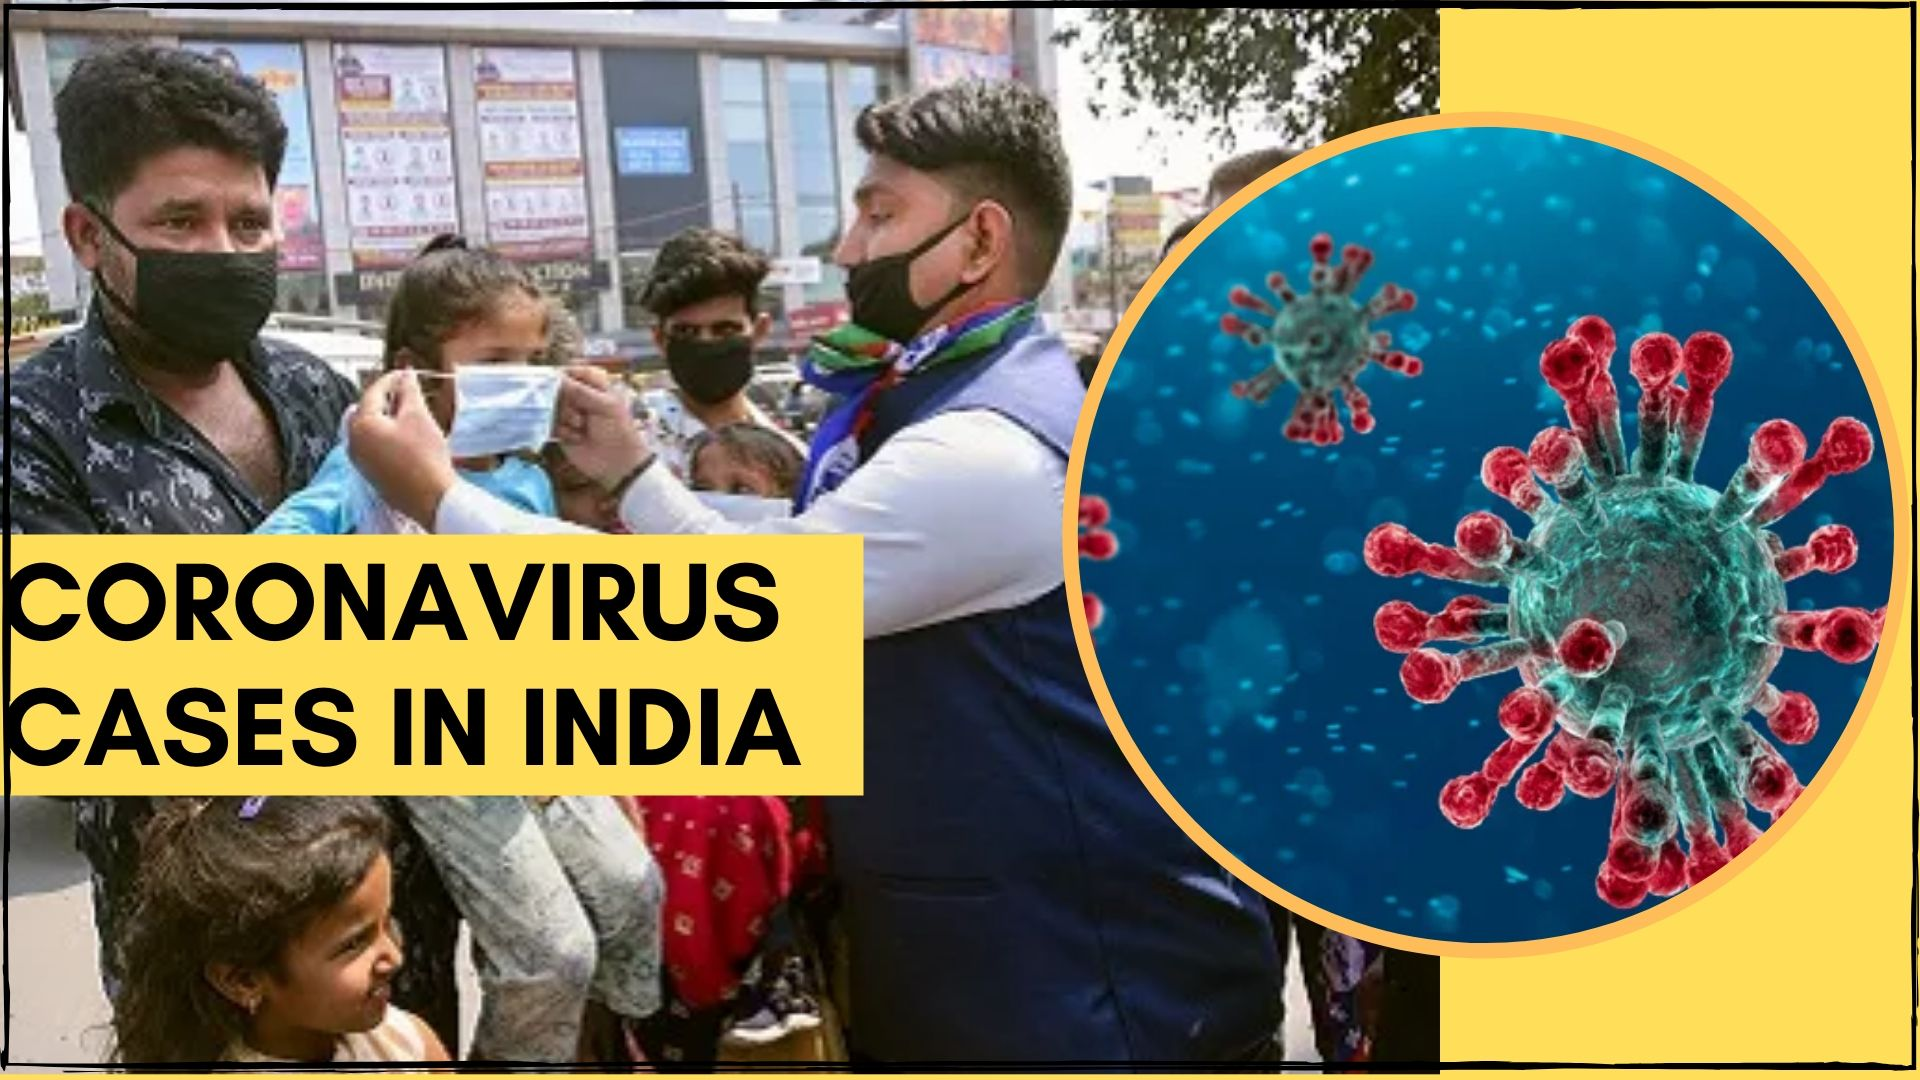 TOTAL CORONAVIRUS CONFIRMED CASES SHOOTS UP TO 75 IN INDIA